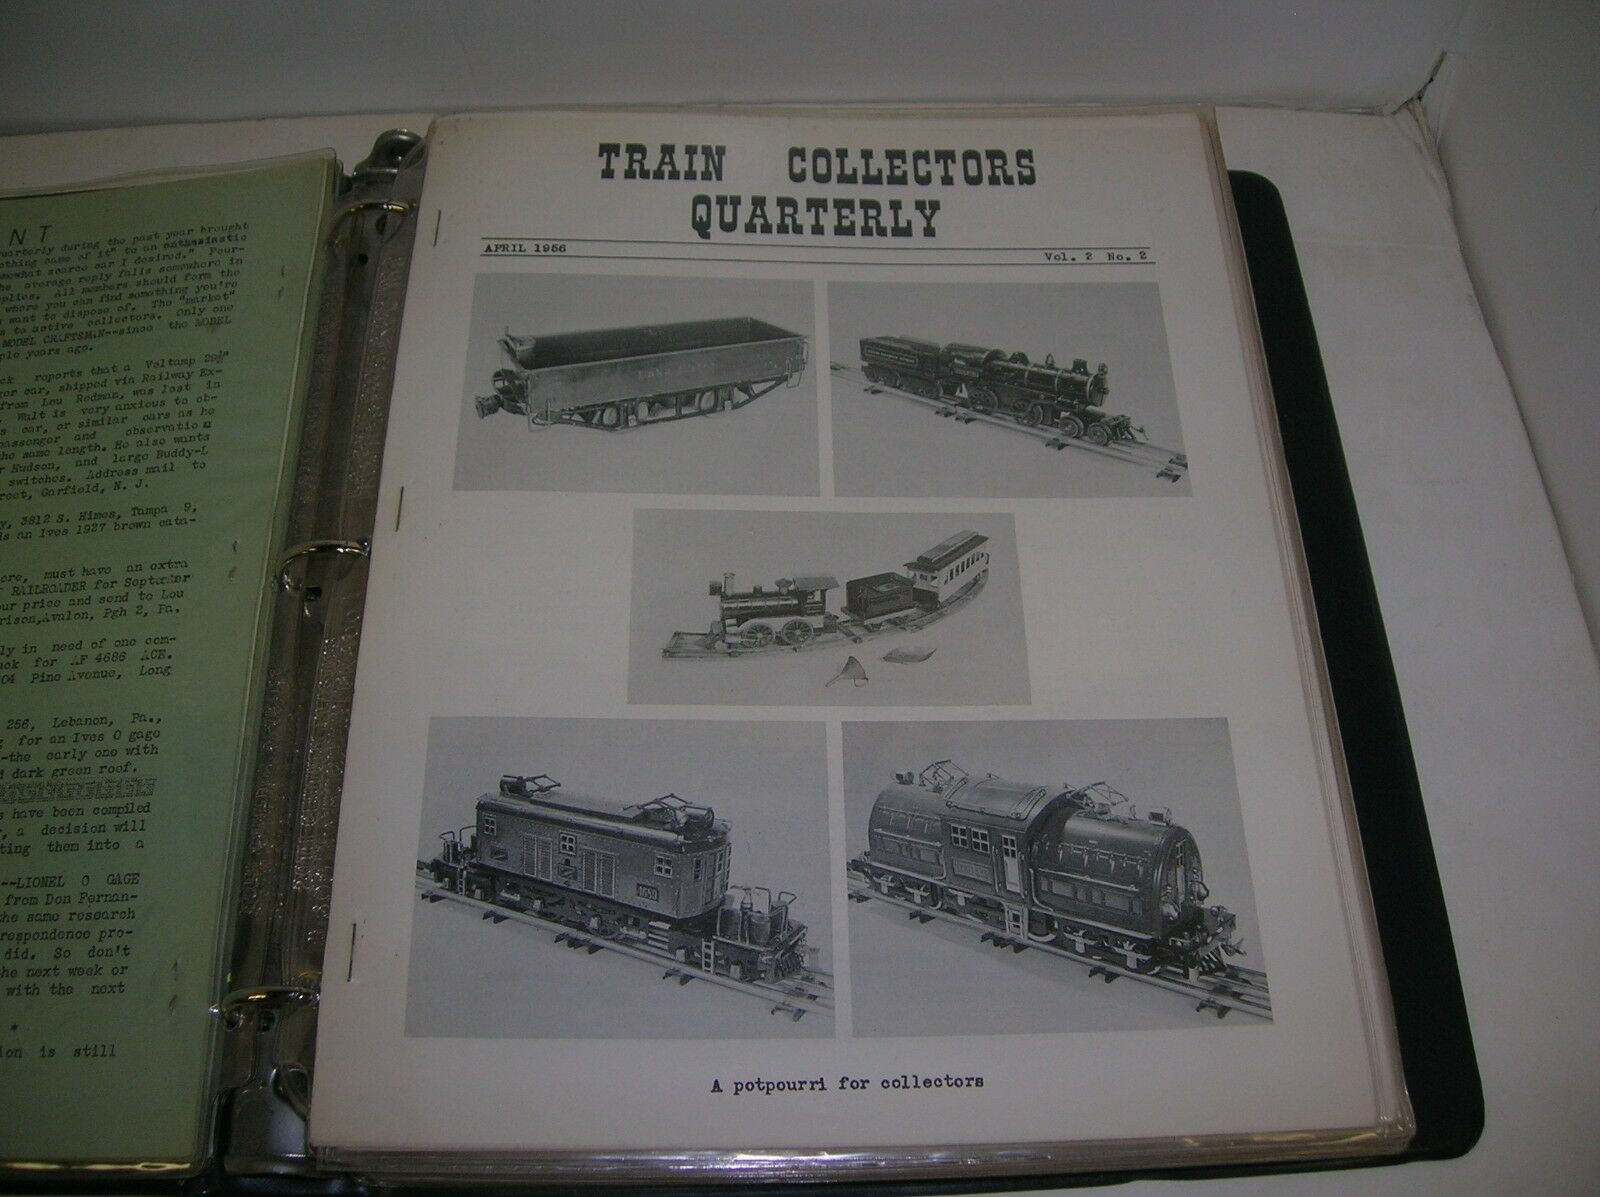 TRAIN COLLECTORS QUARTERLY NEWS LETTER APRIL  1956 VOL. 2 NO. 2 - MAKE OFFERS